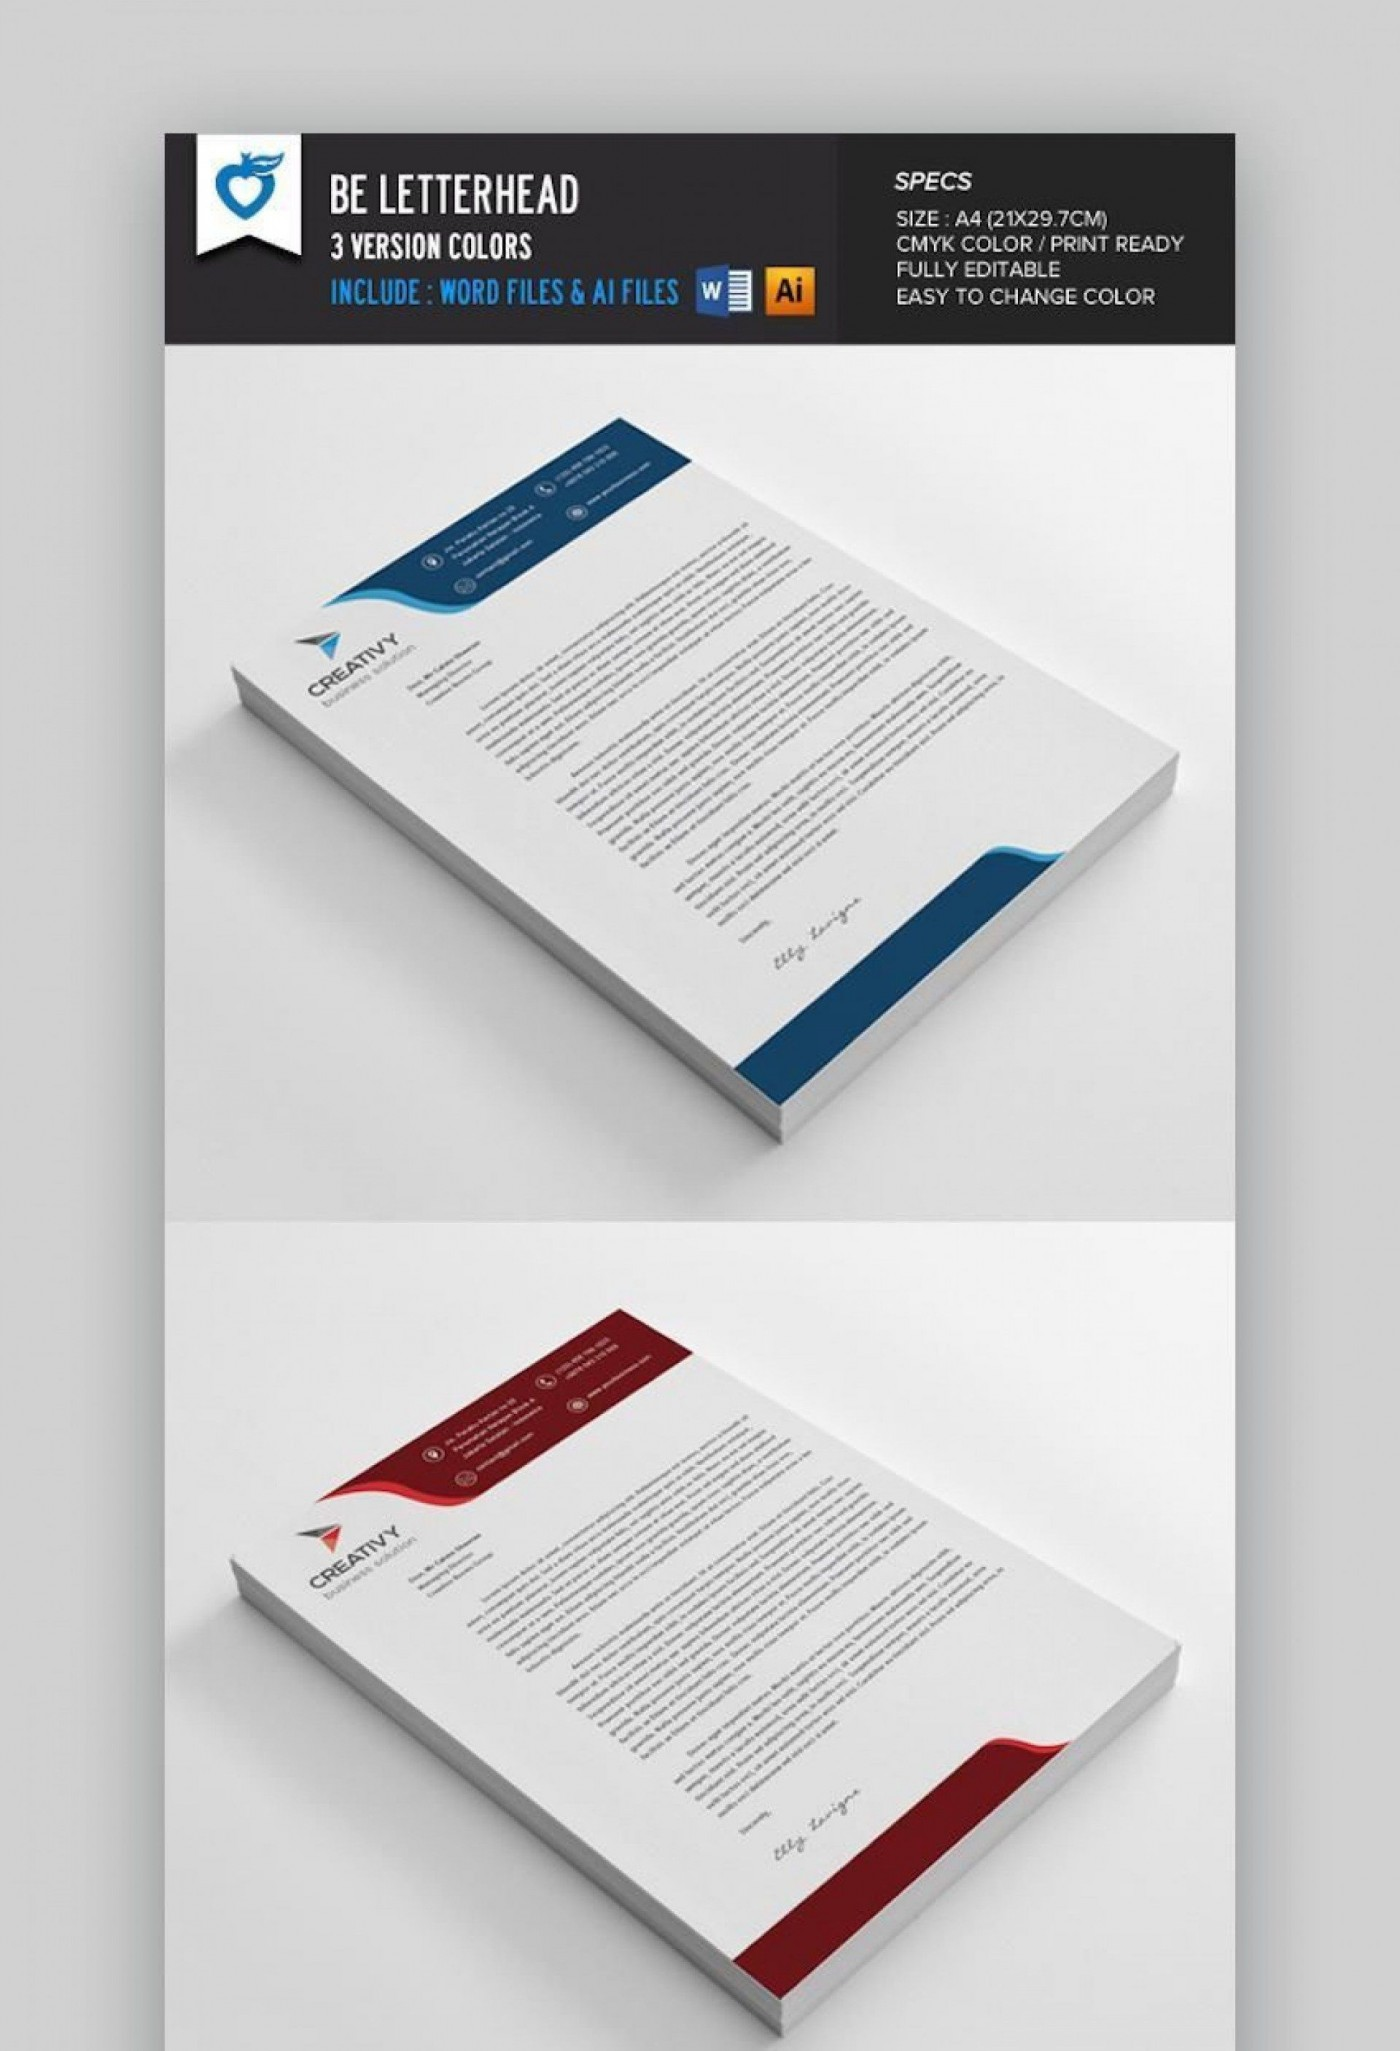 008 Excellent Letterhead Template Free Download Ai Picture  File1400